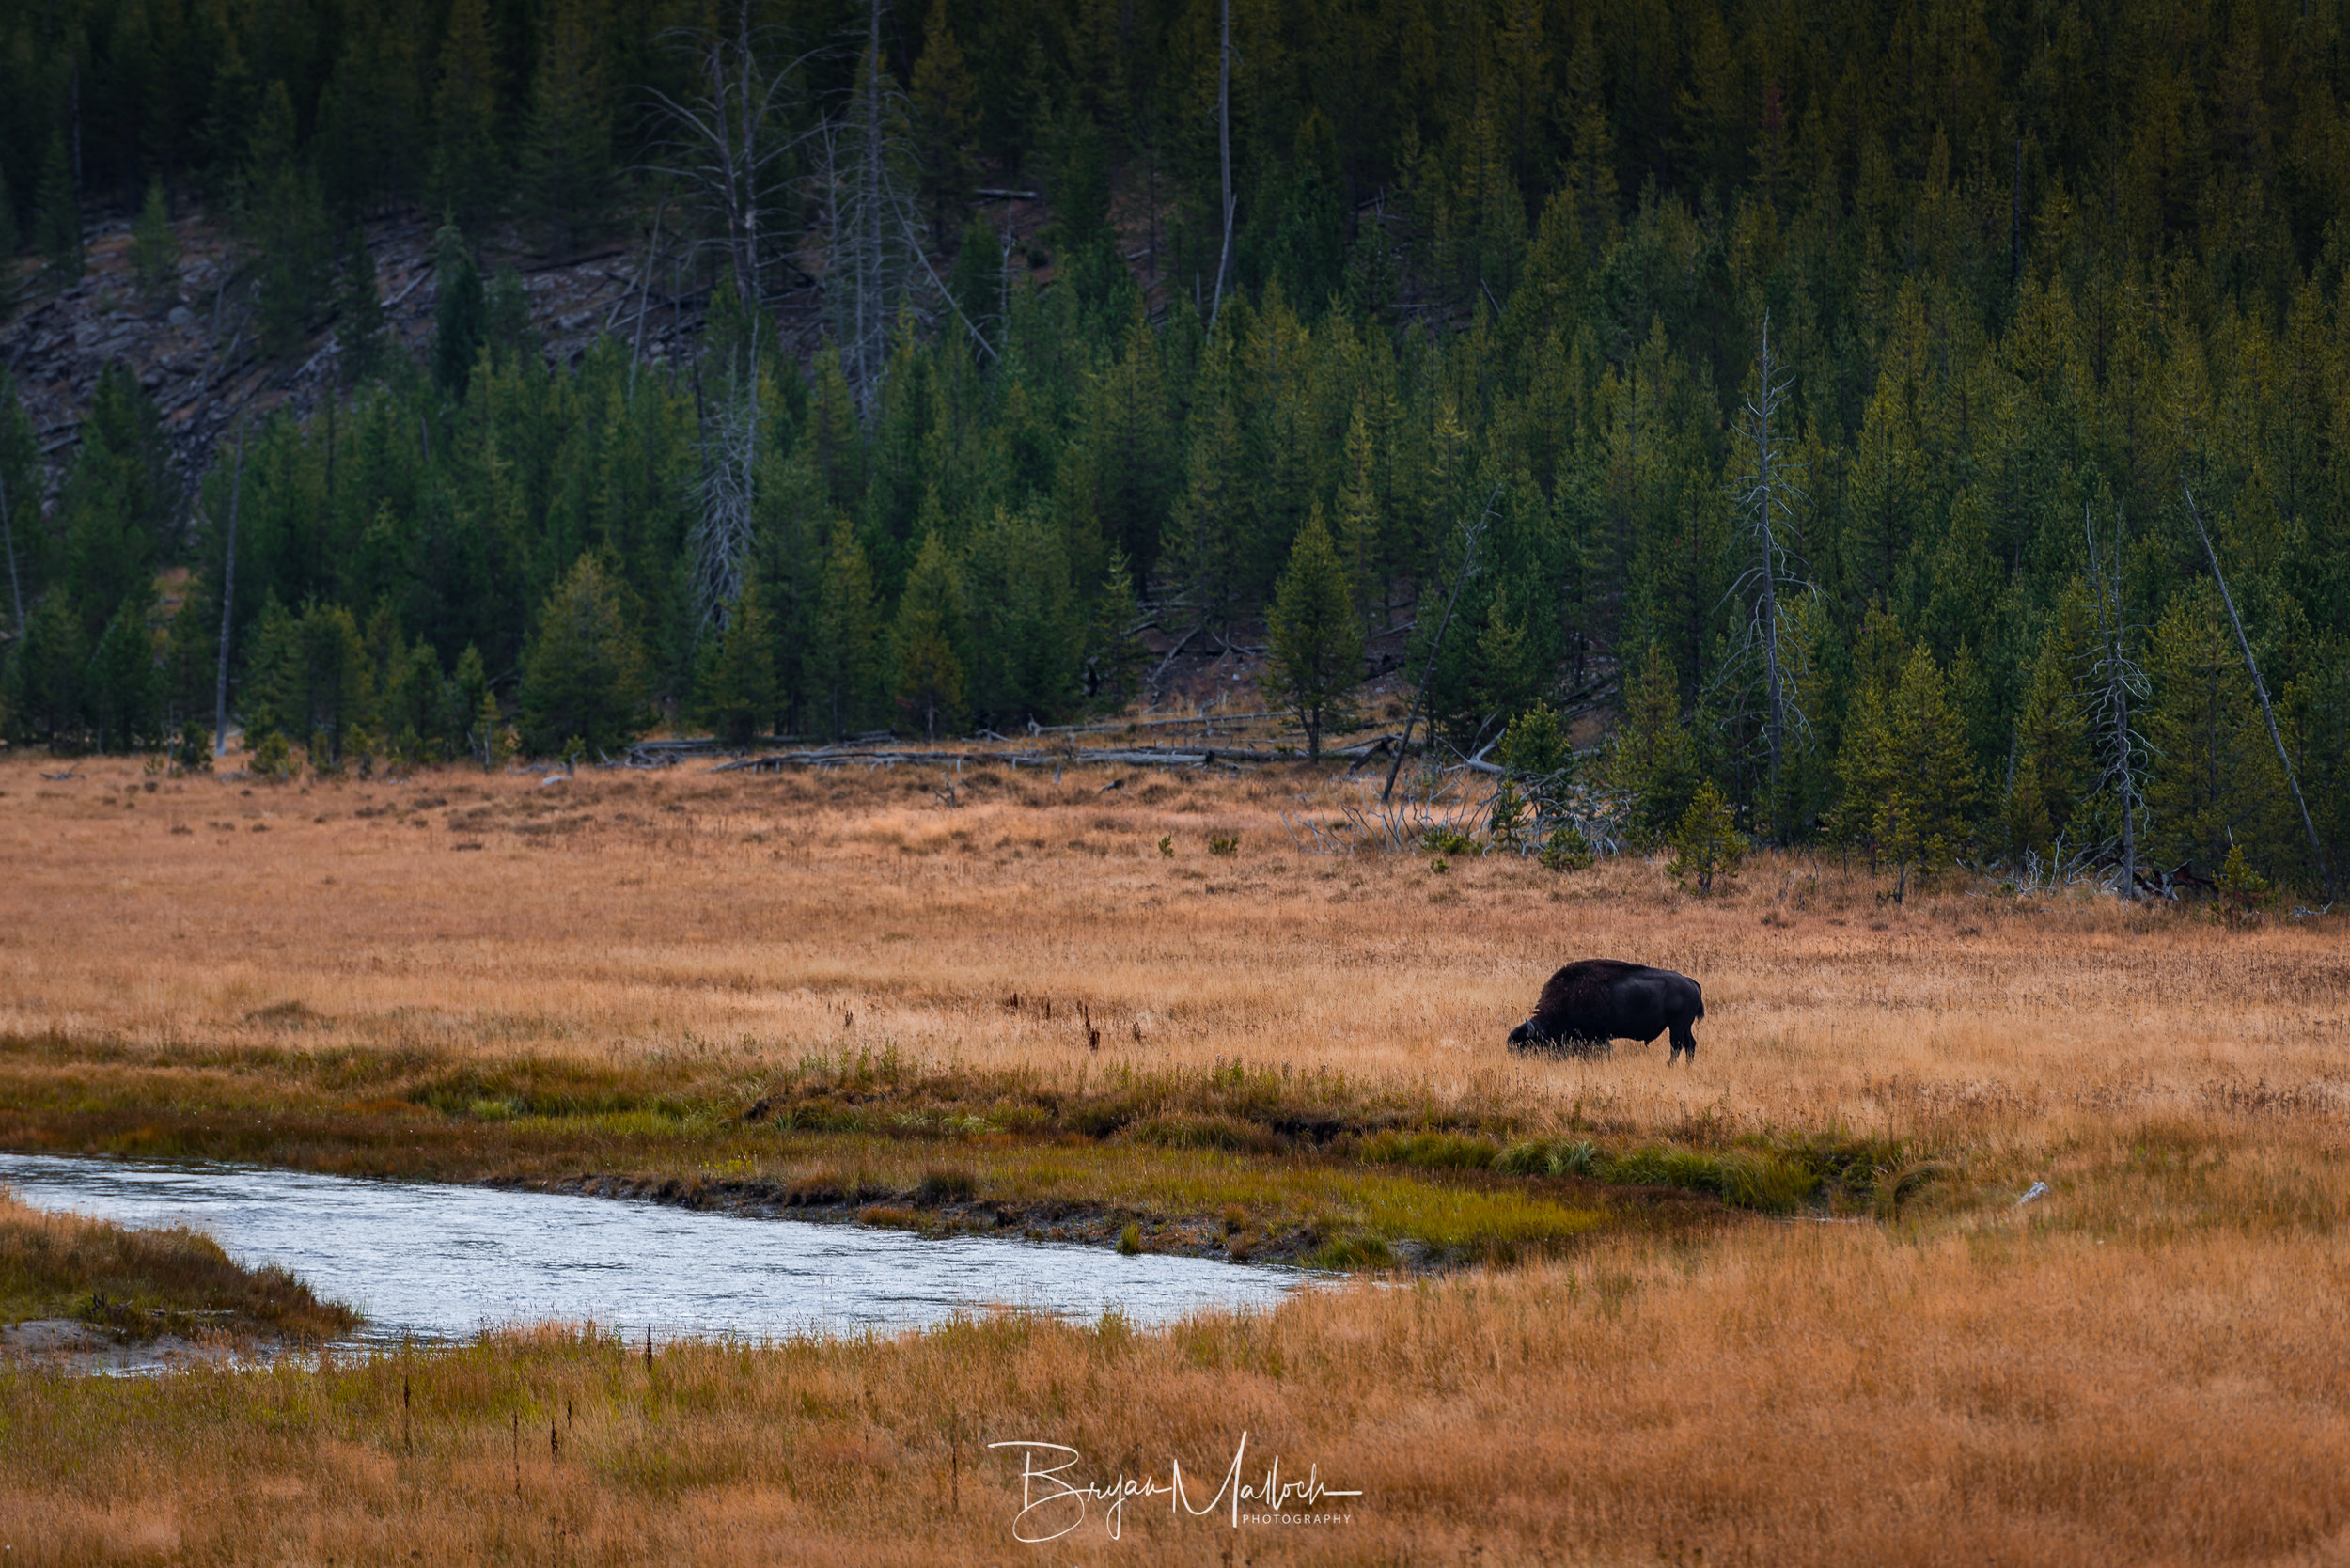 A bison grazes along the Gibbon River